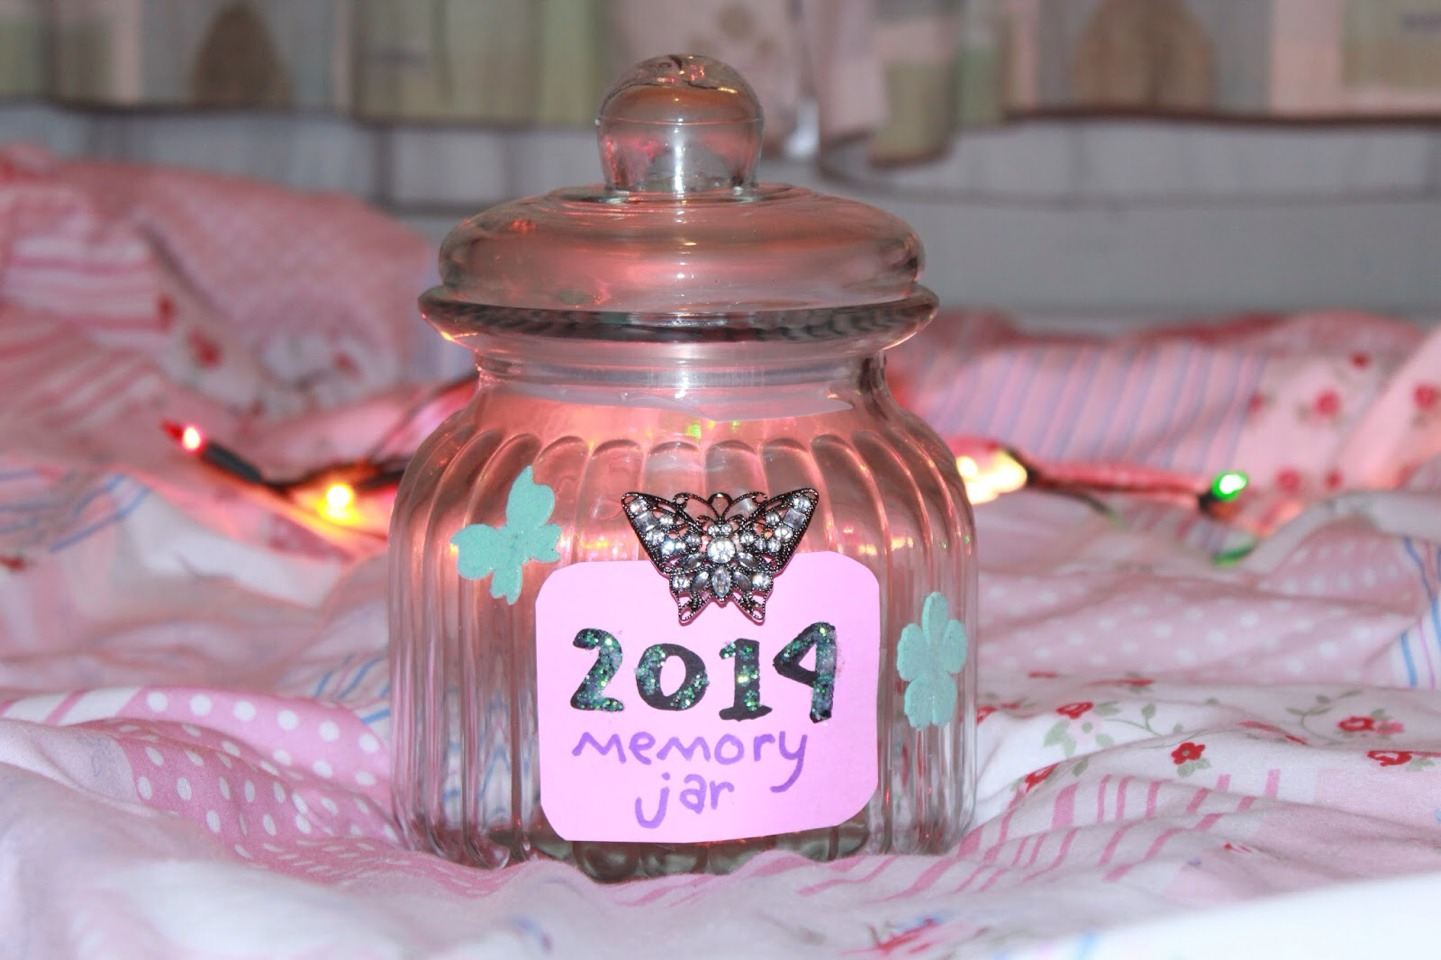 Make diys like a memory jar, crayon art, making dreamcatchers, or using mason jars for different things